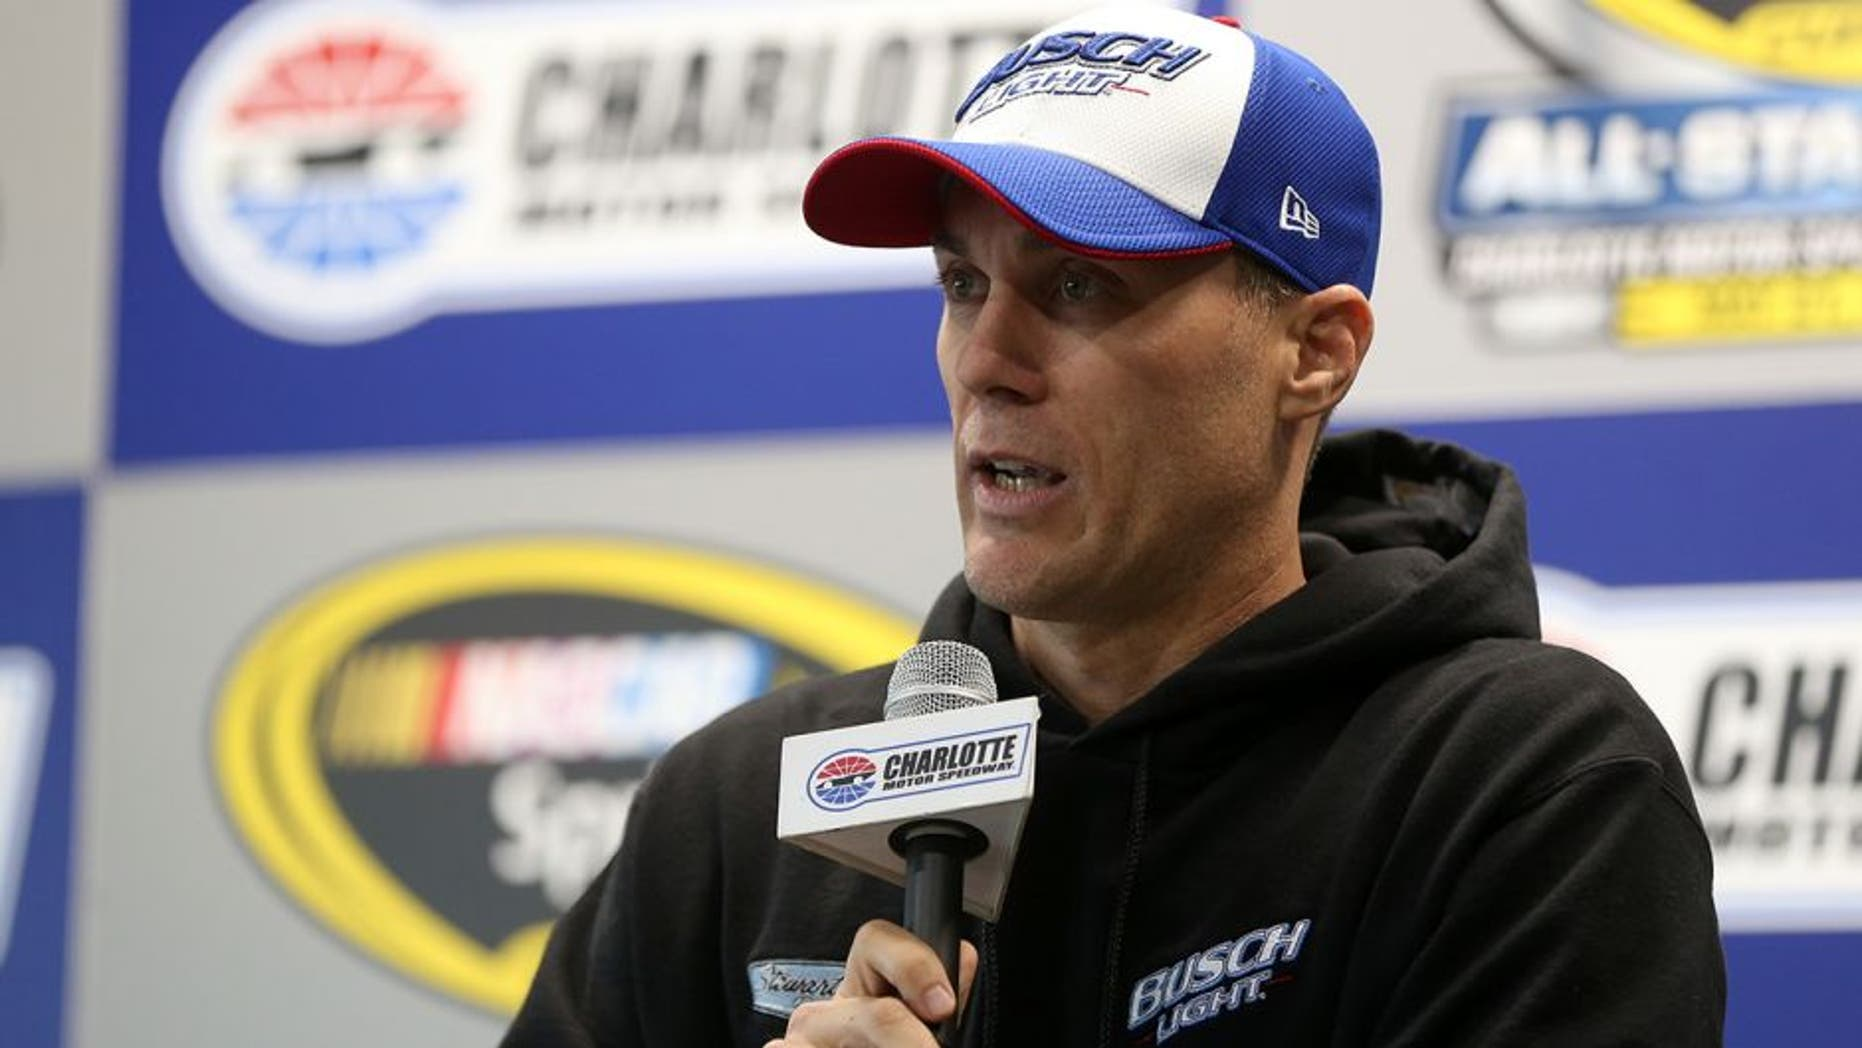 CHARLOTTE, NC - MAY 20: Kevin Harvick, driver of the #4 Busch Light Chevrolet, spesks to the media during a press conference prior to practice for the NASCAR Sprint Cup Series Sprint Showdown at Charlotte Motor Speedway on May 20, 2016 in Charlotte, North Carolina. (Photo by Matt Sullivan/NASCAR via Getty Images)